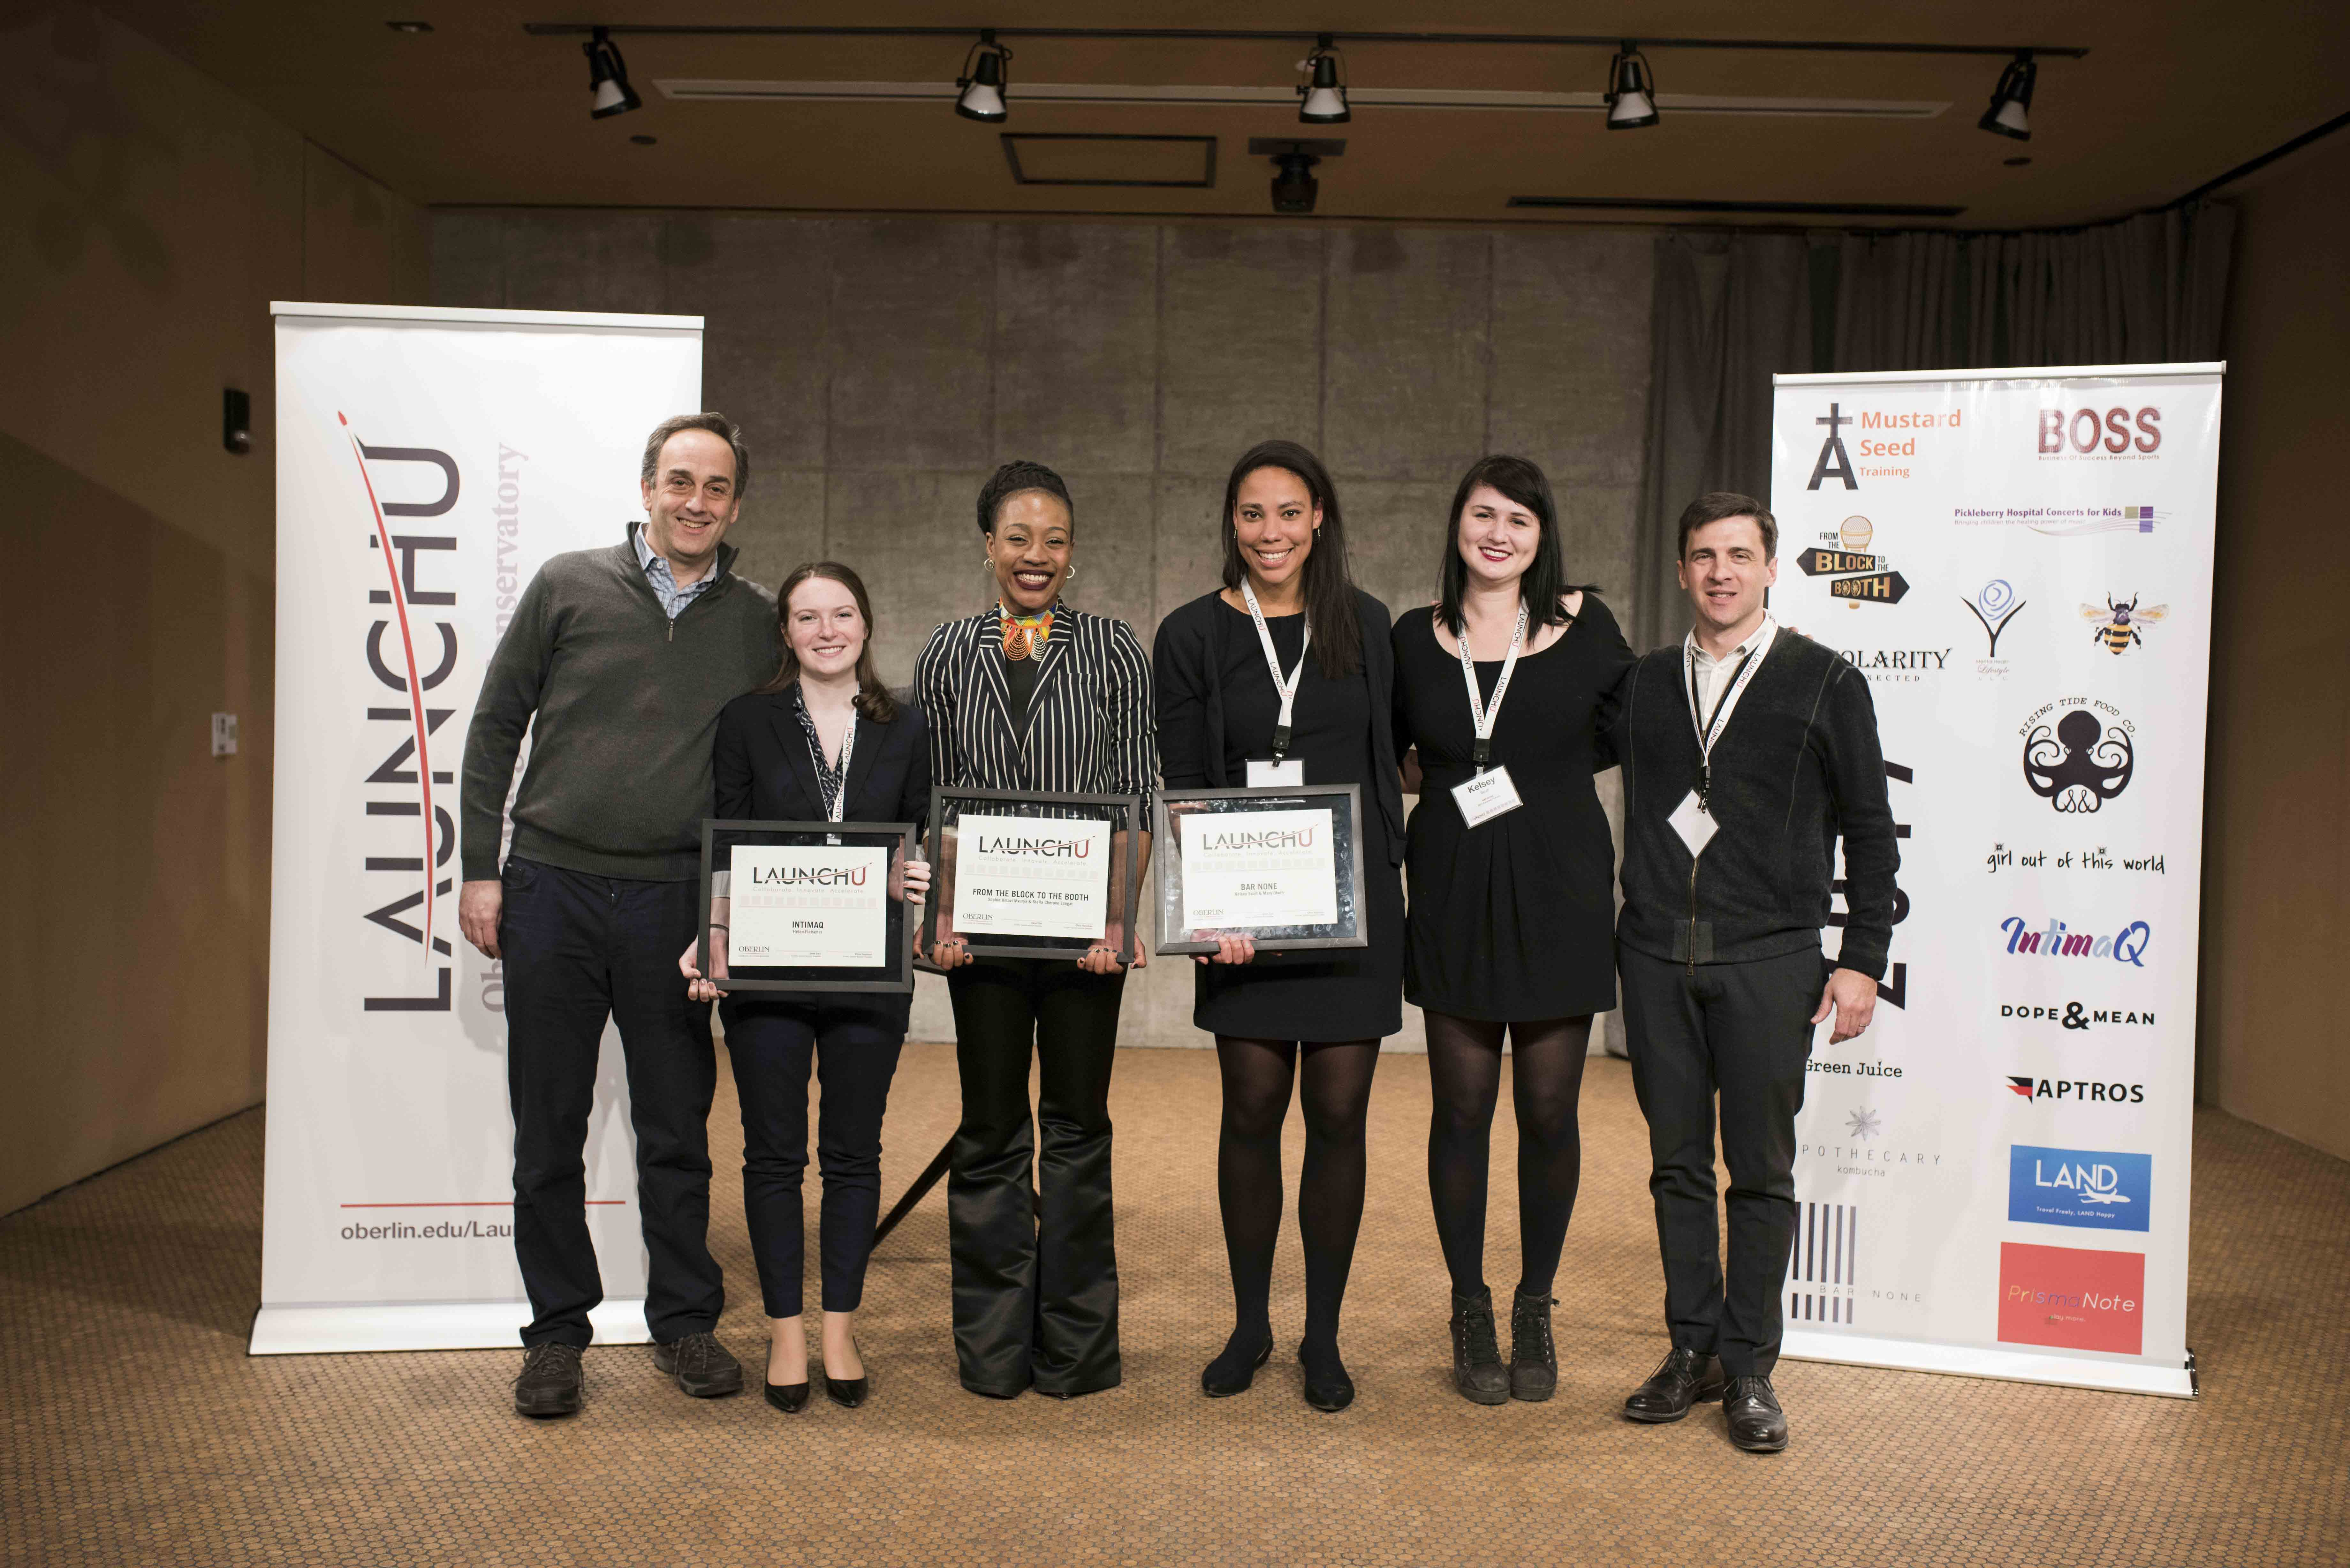 Conservatory junior Helen Fleischer, Sophie Mvurya, OC '16, Mary Okoth, OC '14, and Kelsey Scult, OC '14, receive the 2017 LaunchU awards. Their three startups earned a collective $45,000 after winning the March 4 Launch U competition.